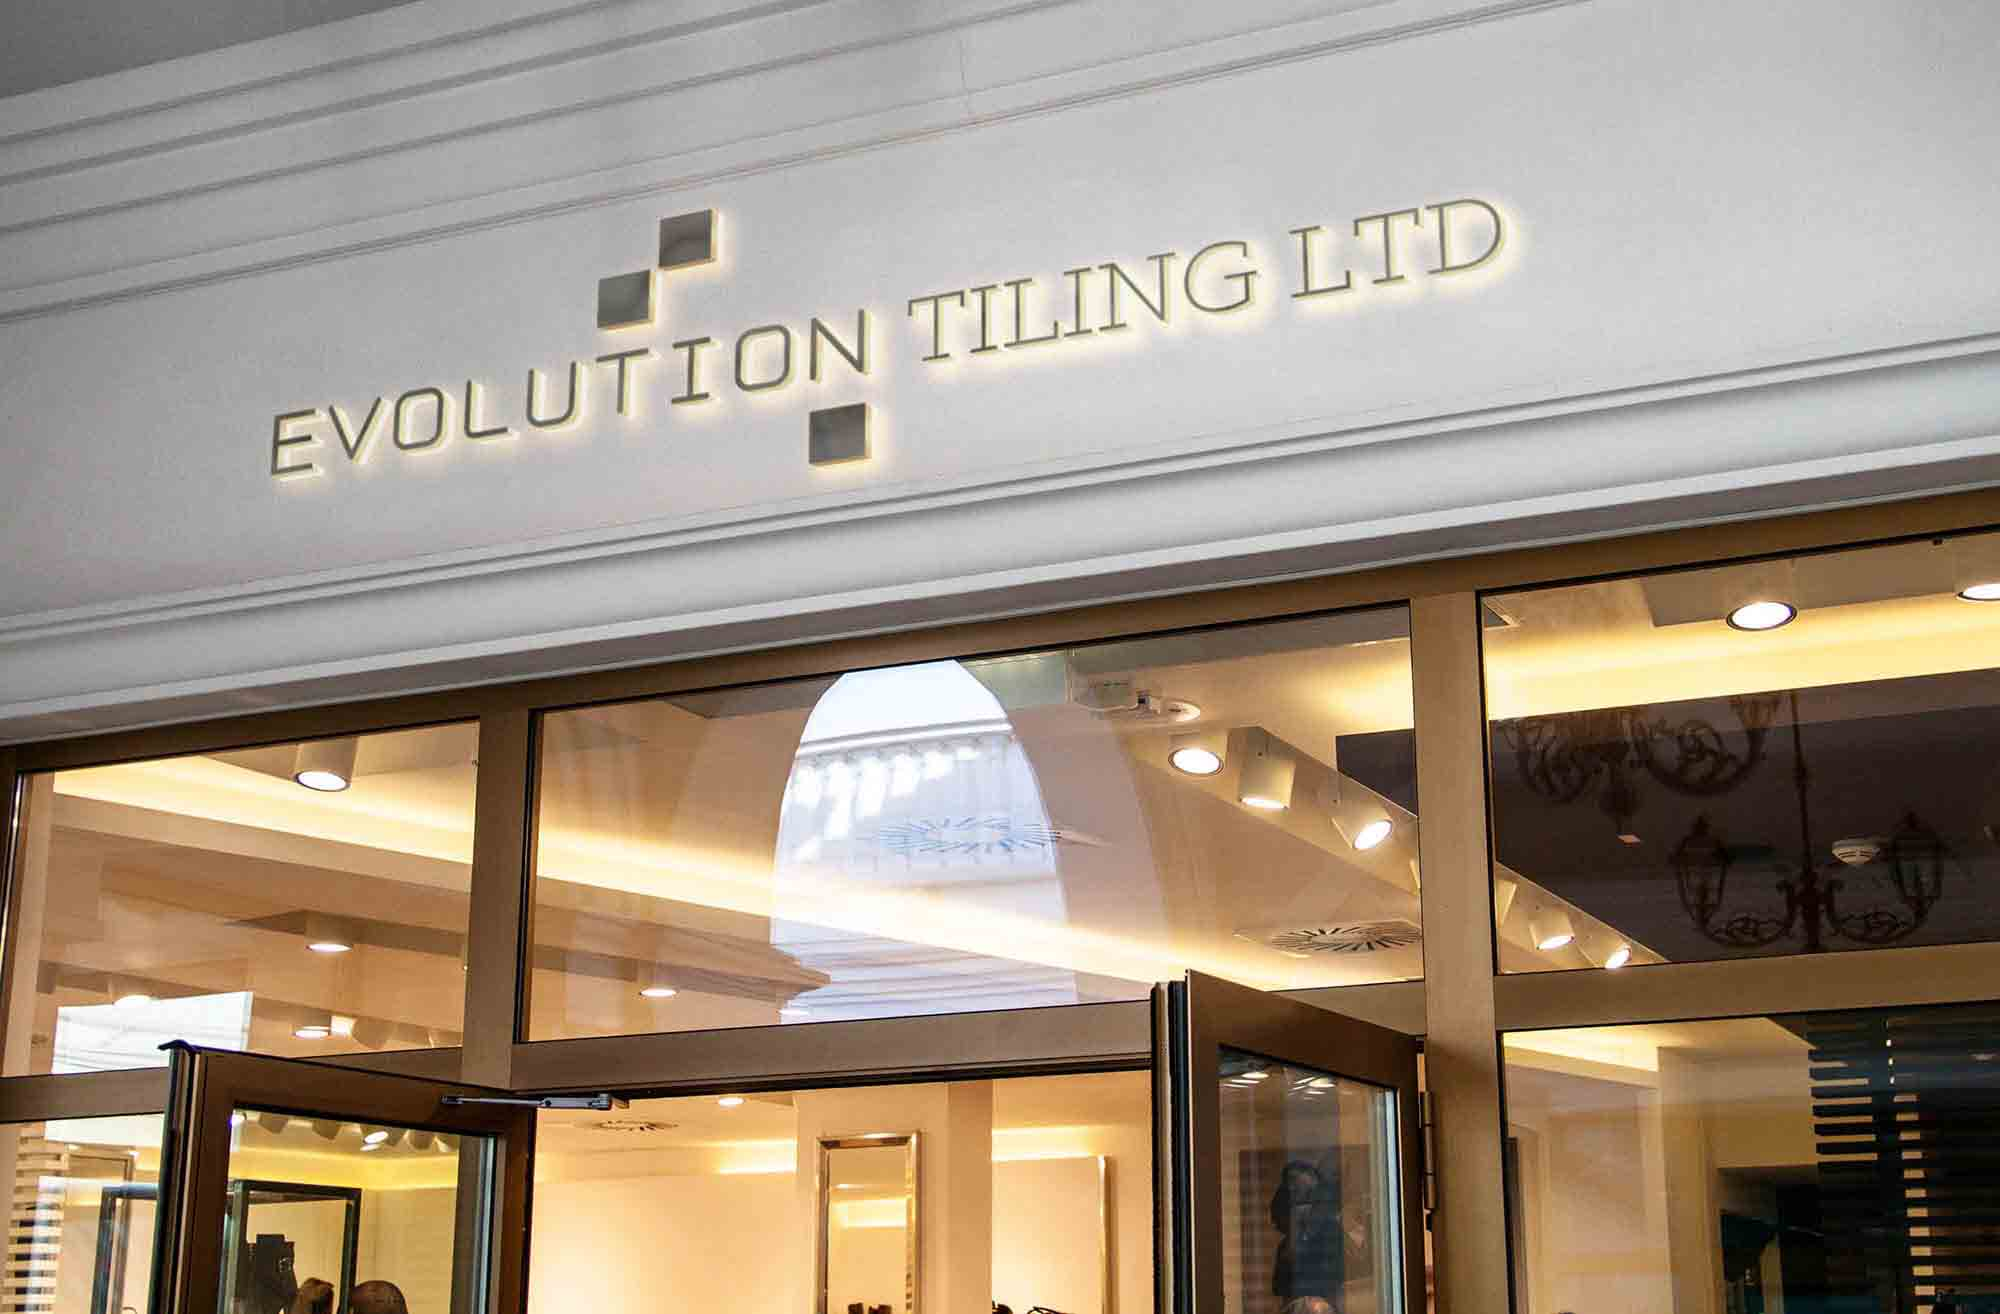 Evolution Tiling Shop